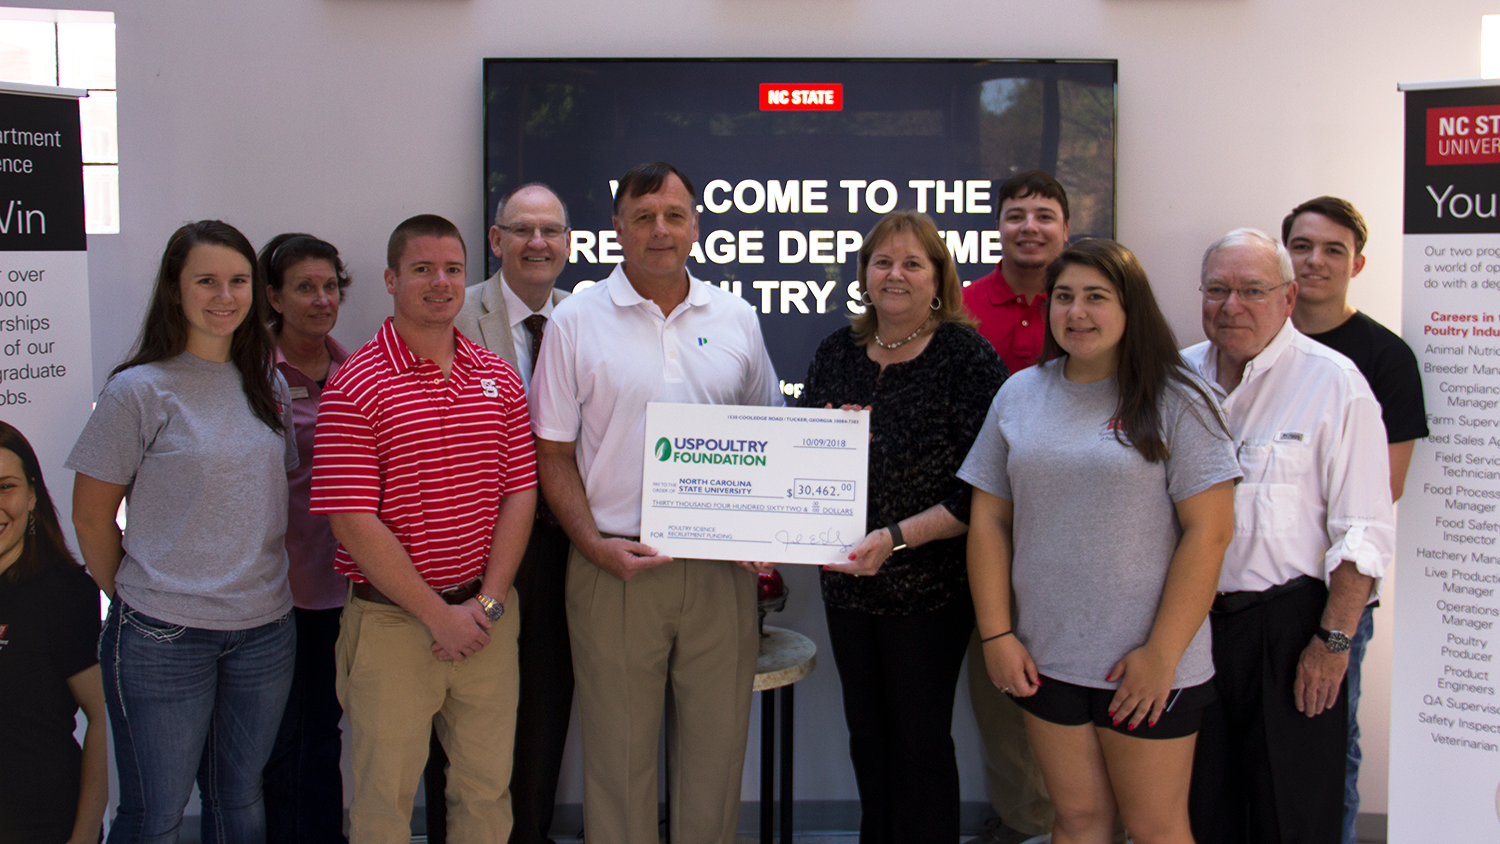 Group of PDPS and industry members hold a large donation check